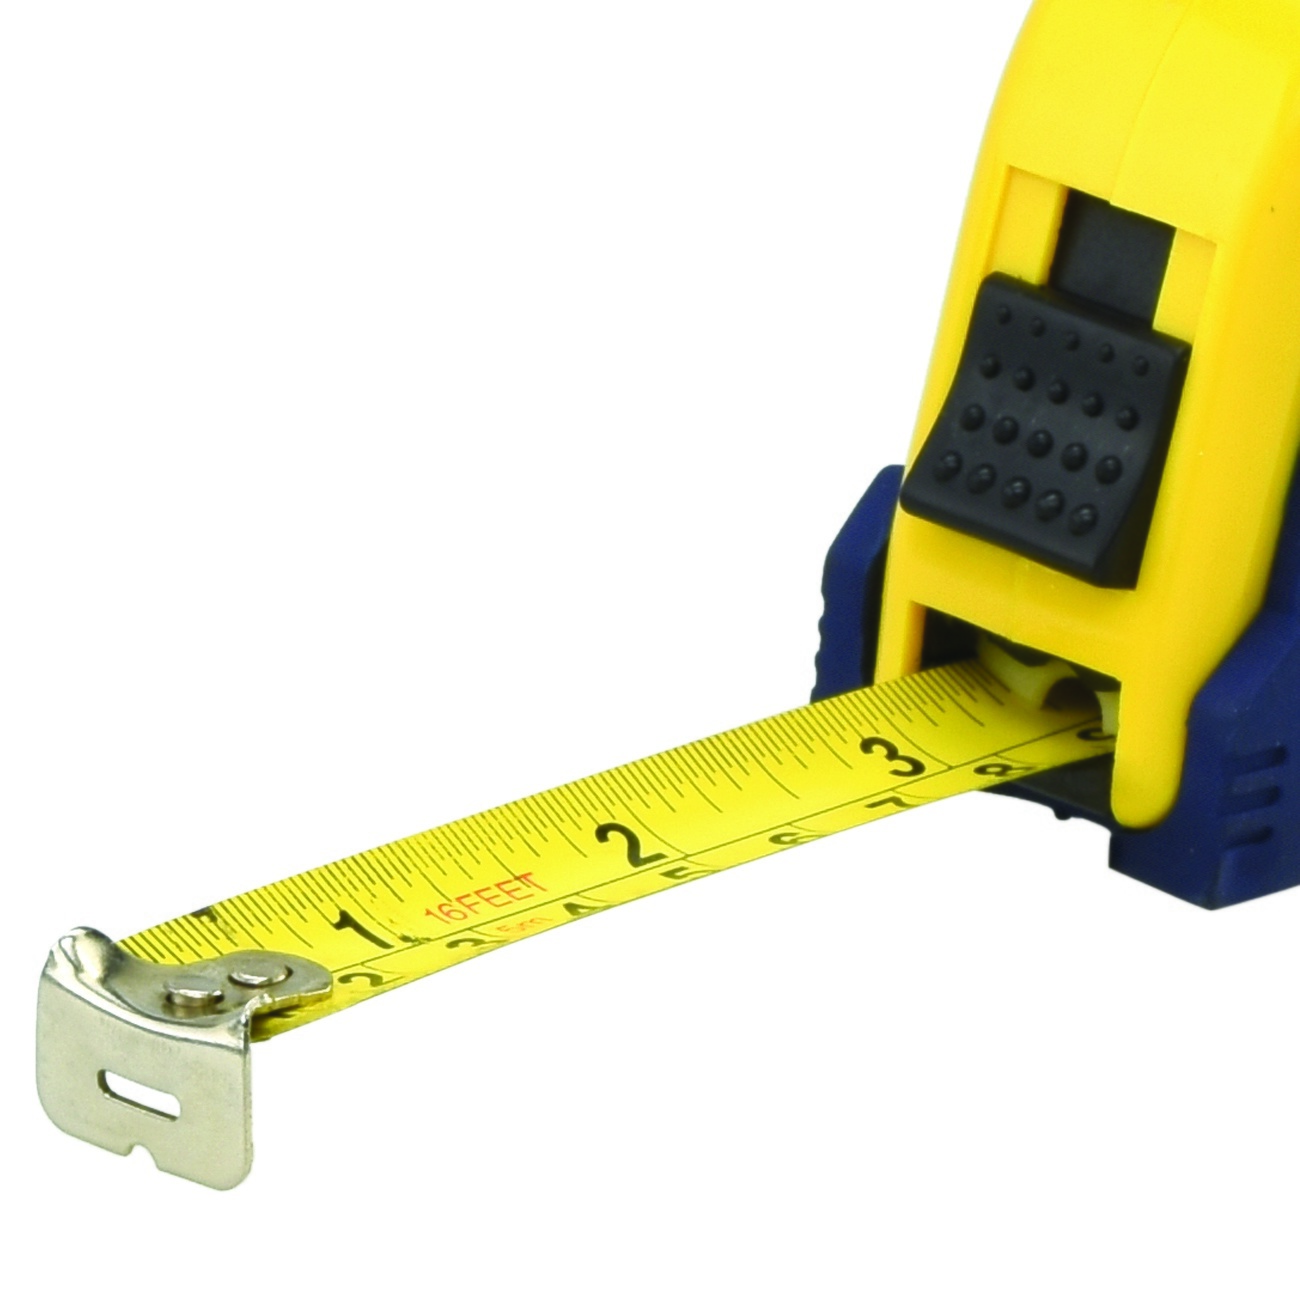 measuring tape 16 39 ft x 3 4 inch pause function button lock sae mm contractor. Black Bedroom Furniture Sets. Home Design Ideas